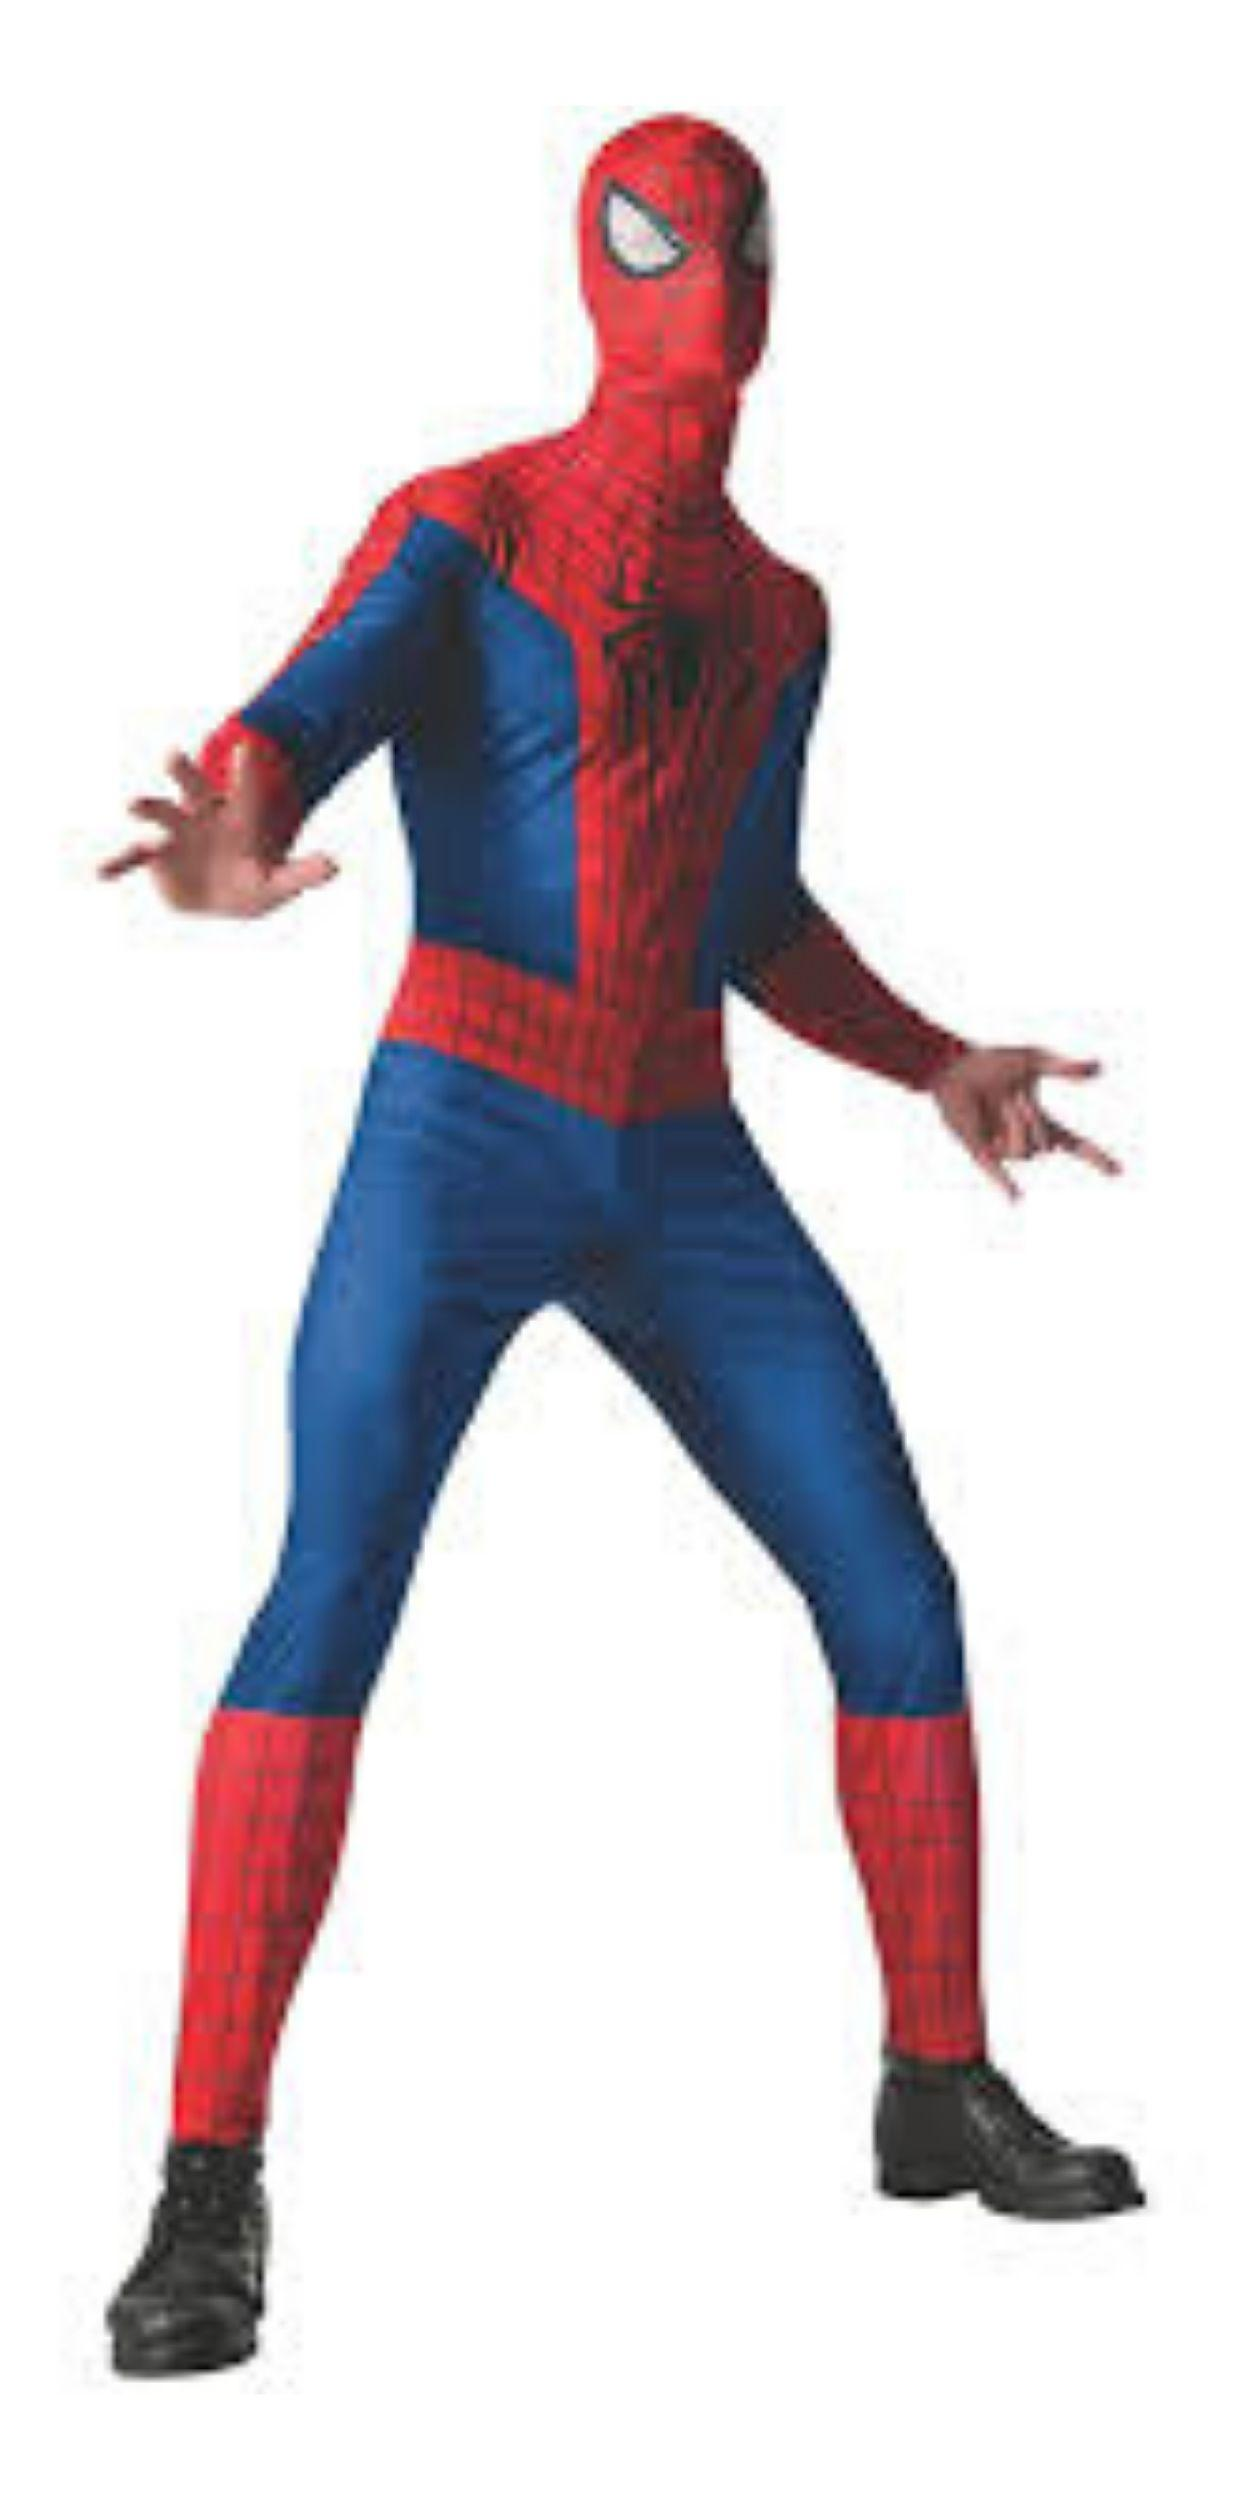 Man in Spider-Man Party Costume